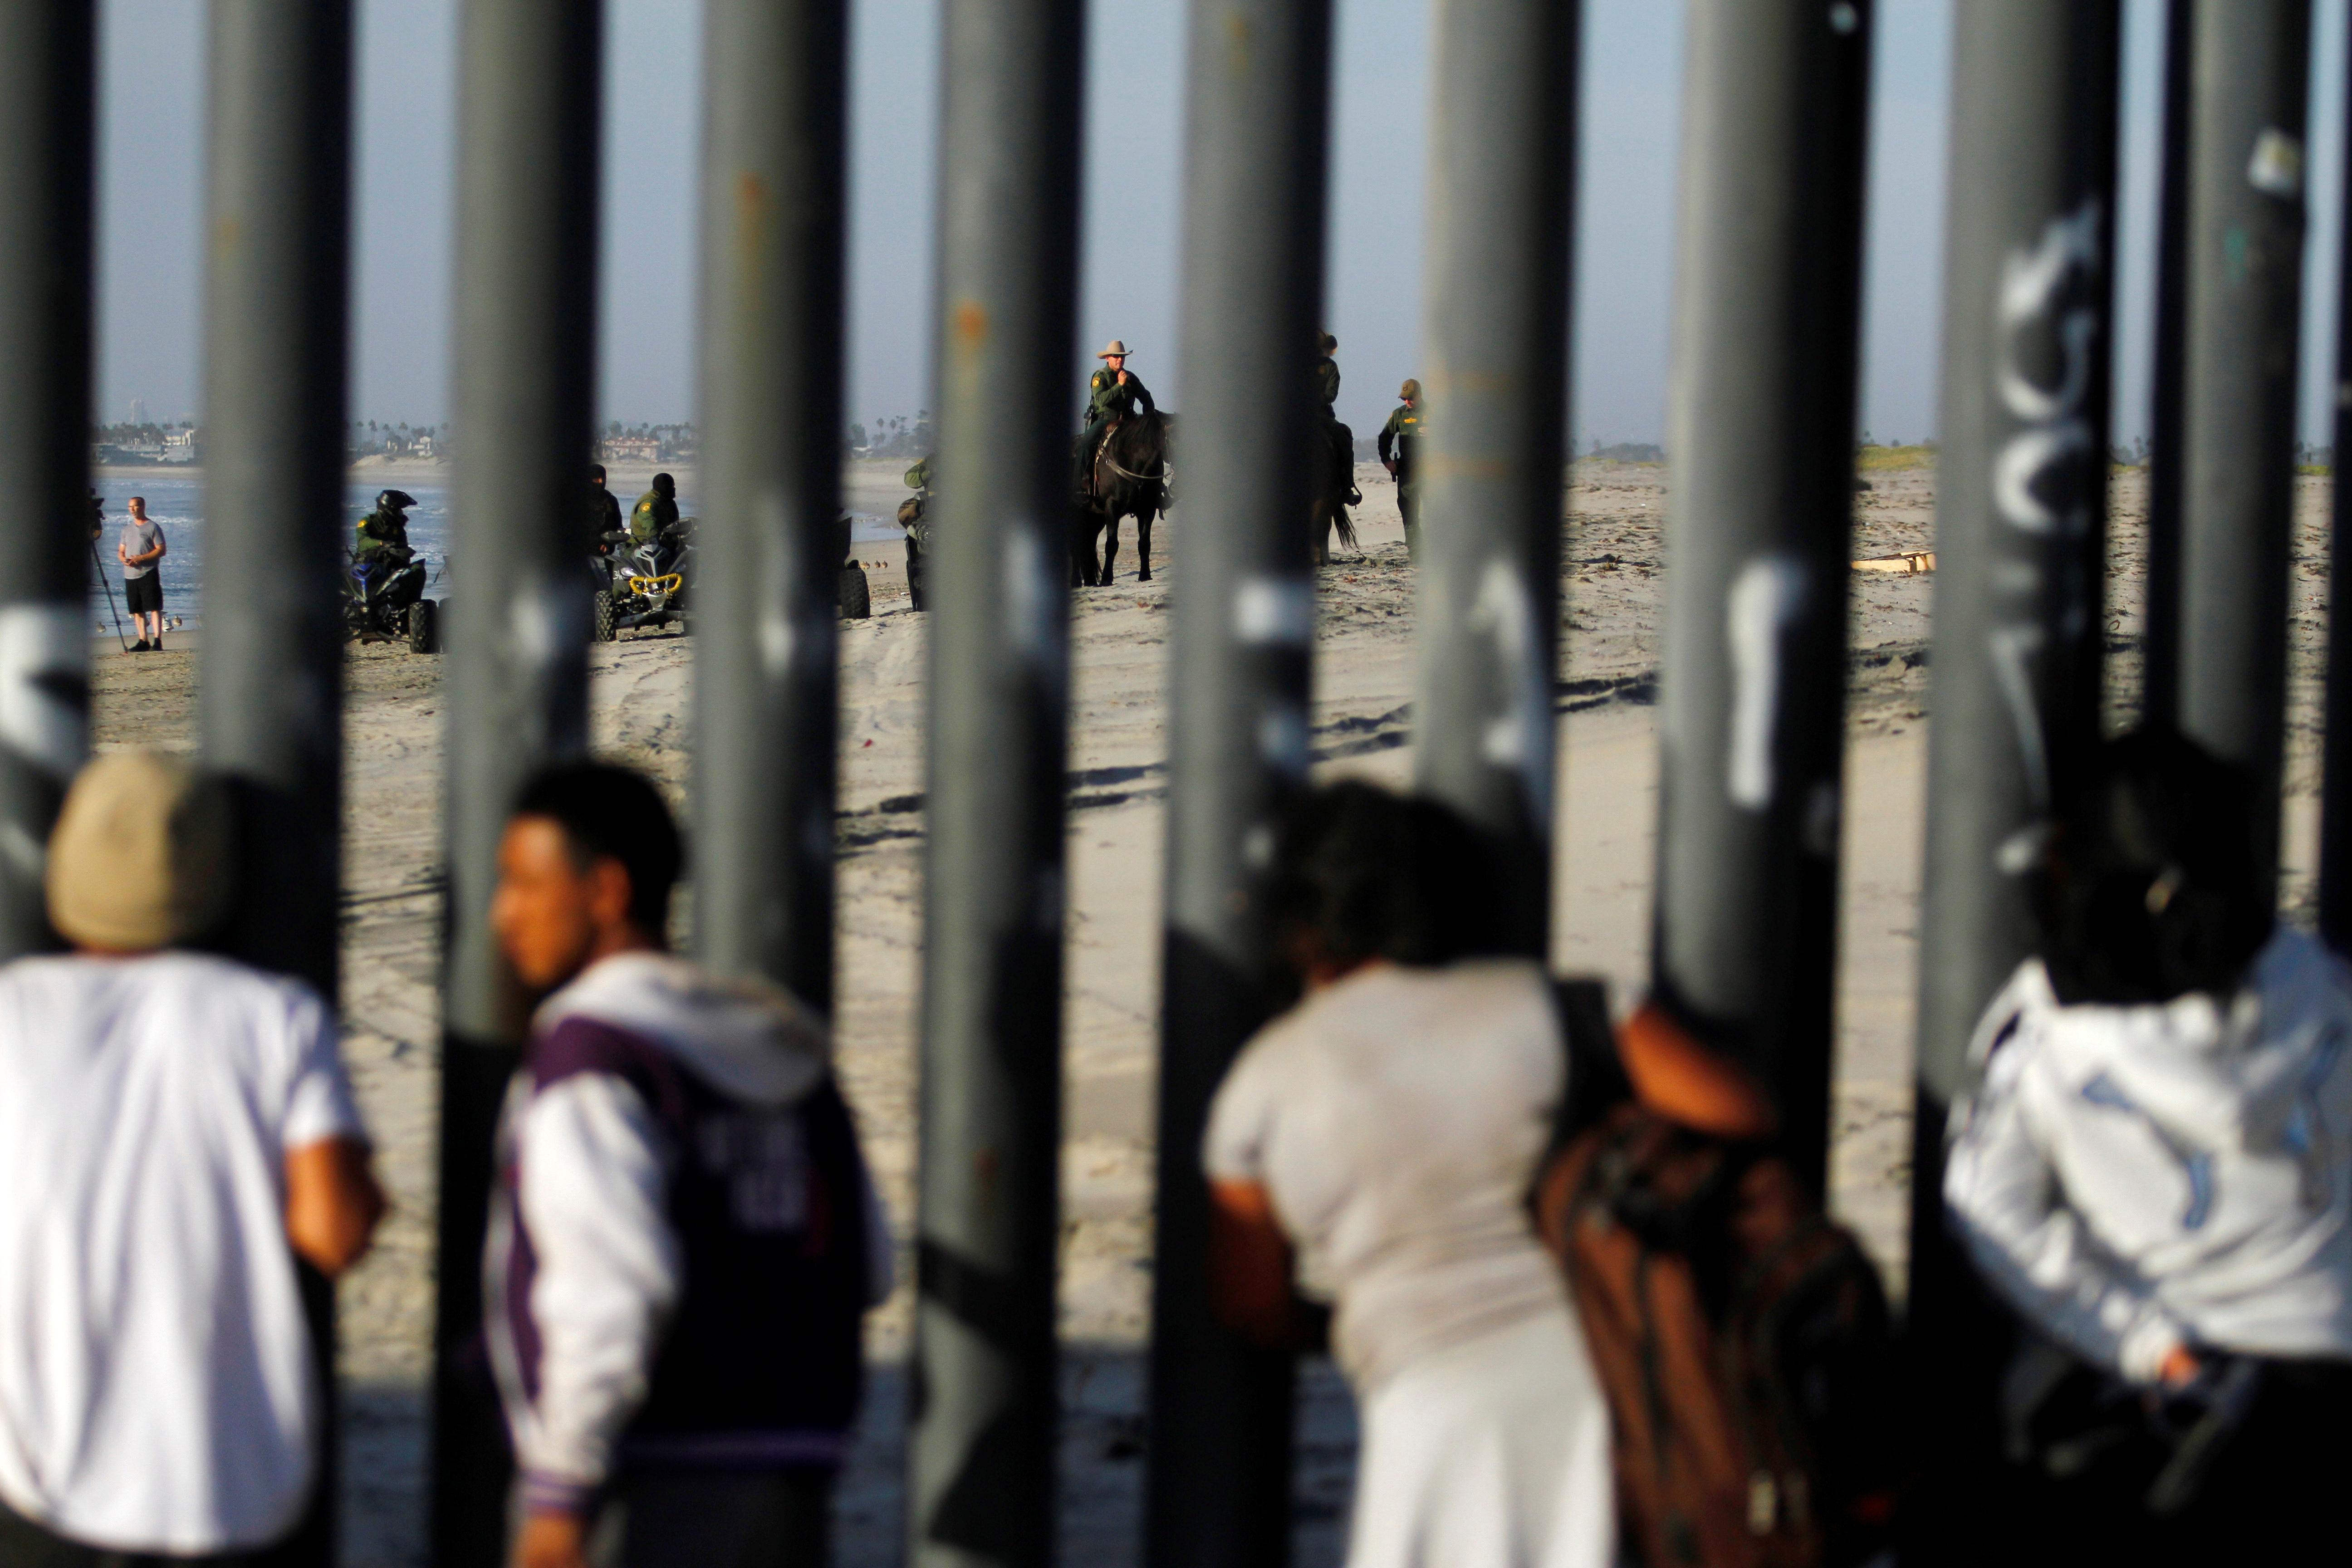 <p>Migrants, part of a caravan of thousands trying to reach the U.S., look at U.S. border patrol through the border fence between Mexico and the United States, after arriving in Tijuana, Mexico, Nov. 13, 2018. (Photo: Jorge Duenes/Reuters) </p>